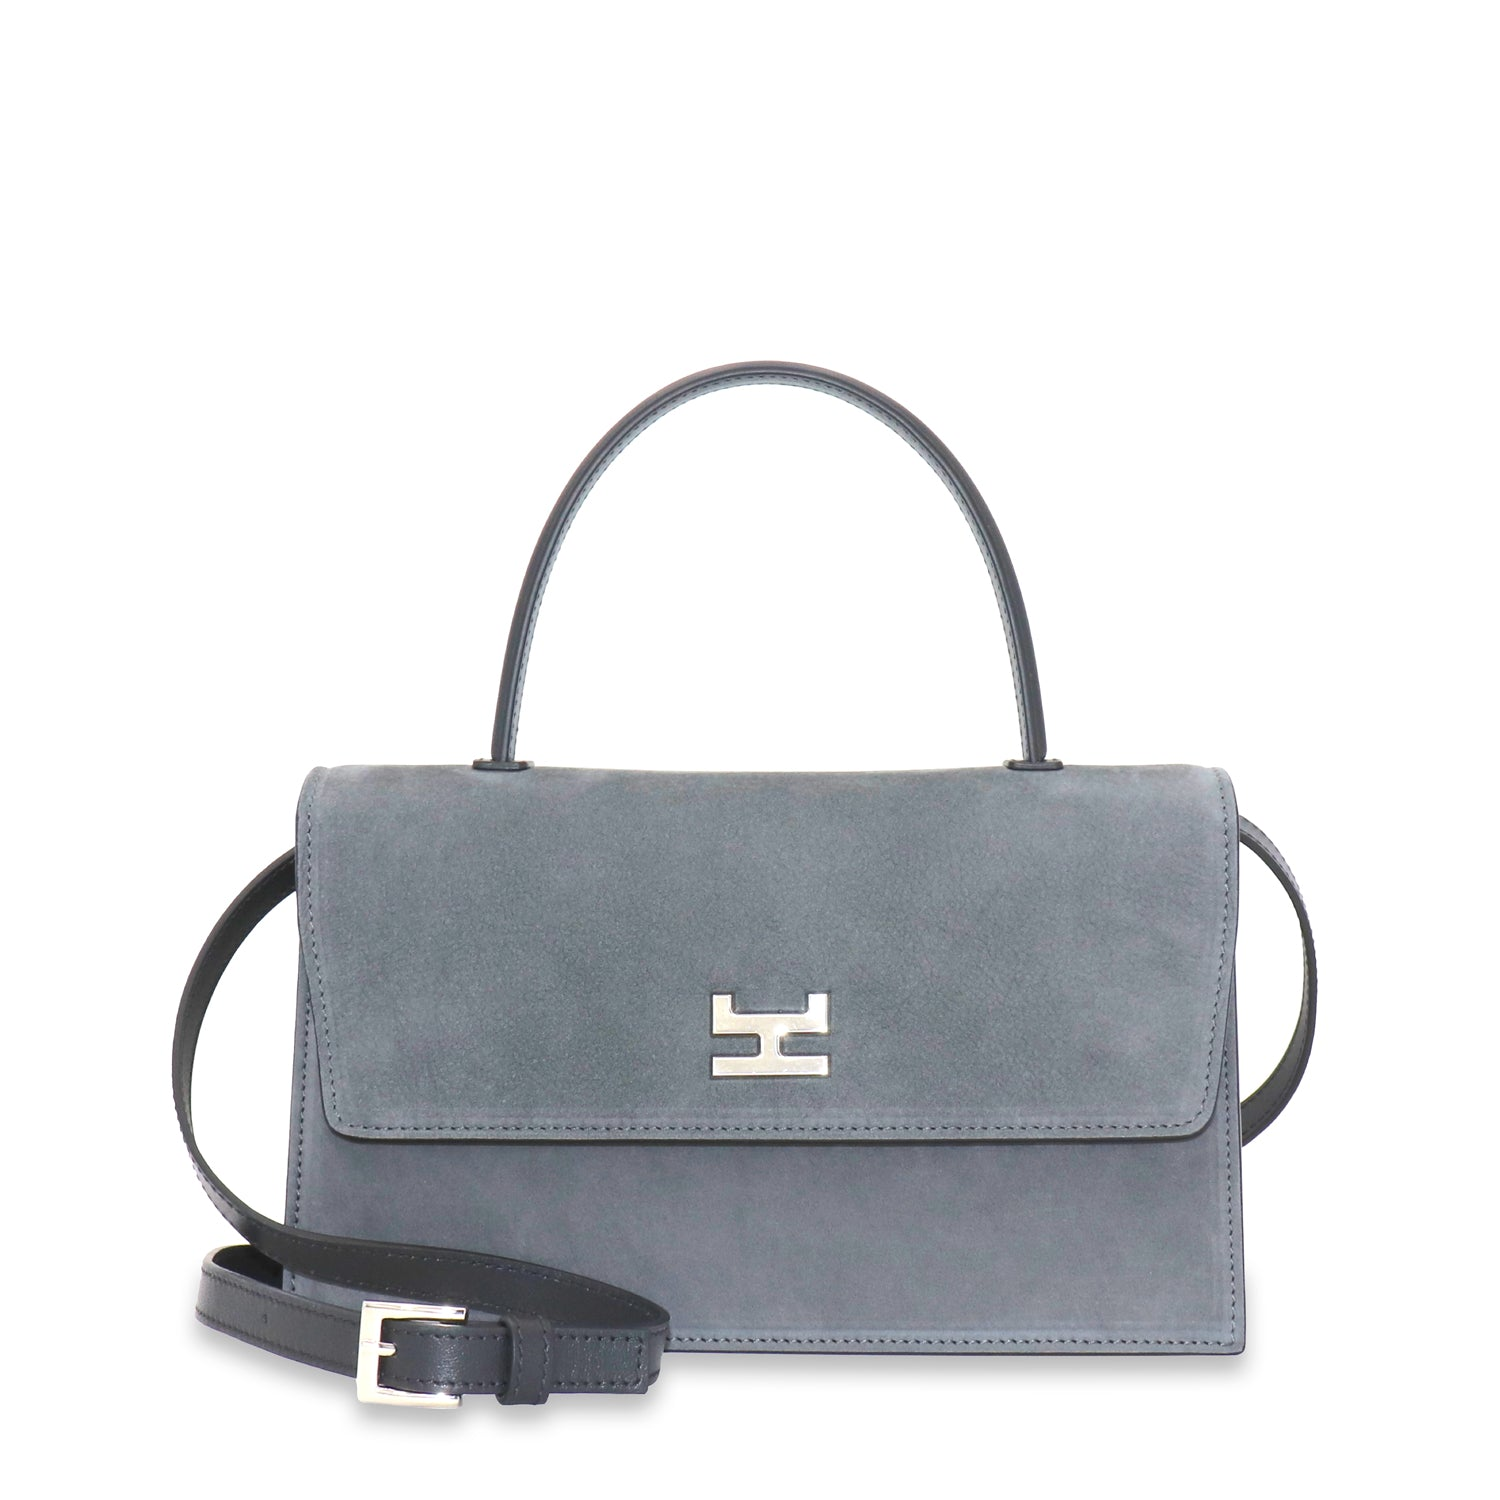 NINEL GRAY NUBUCK WITH BLACK LEATHER TOP HANDLE